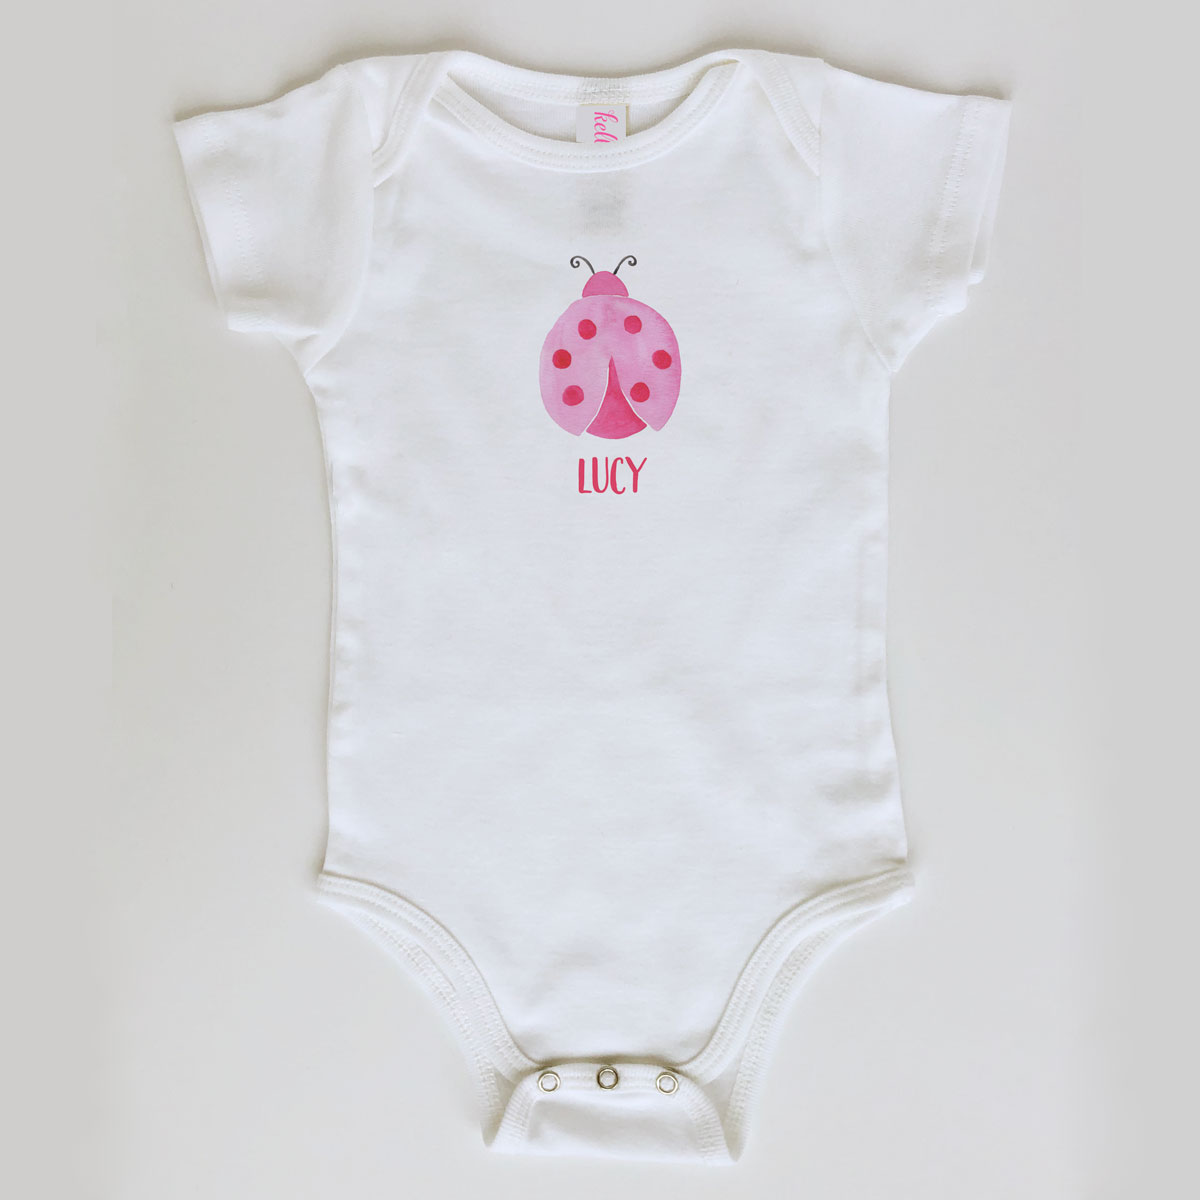 Ladybug Onesie Personalized for Baby